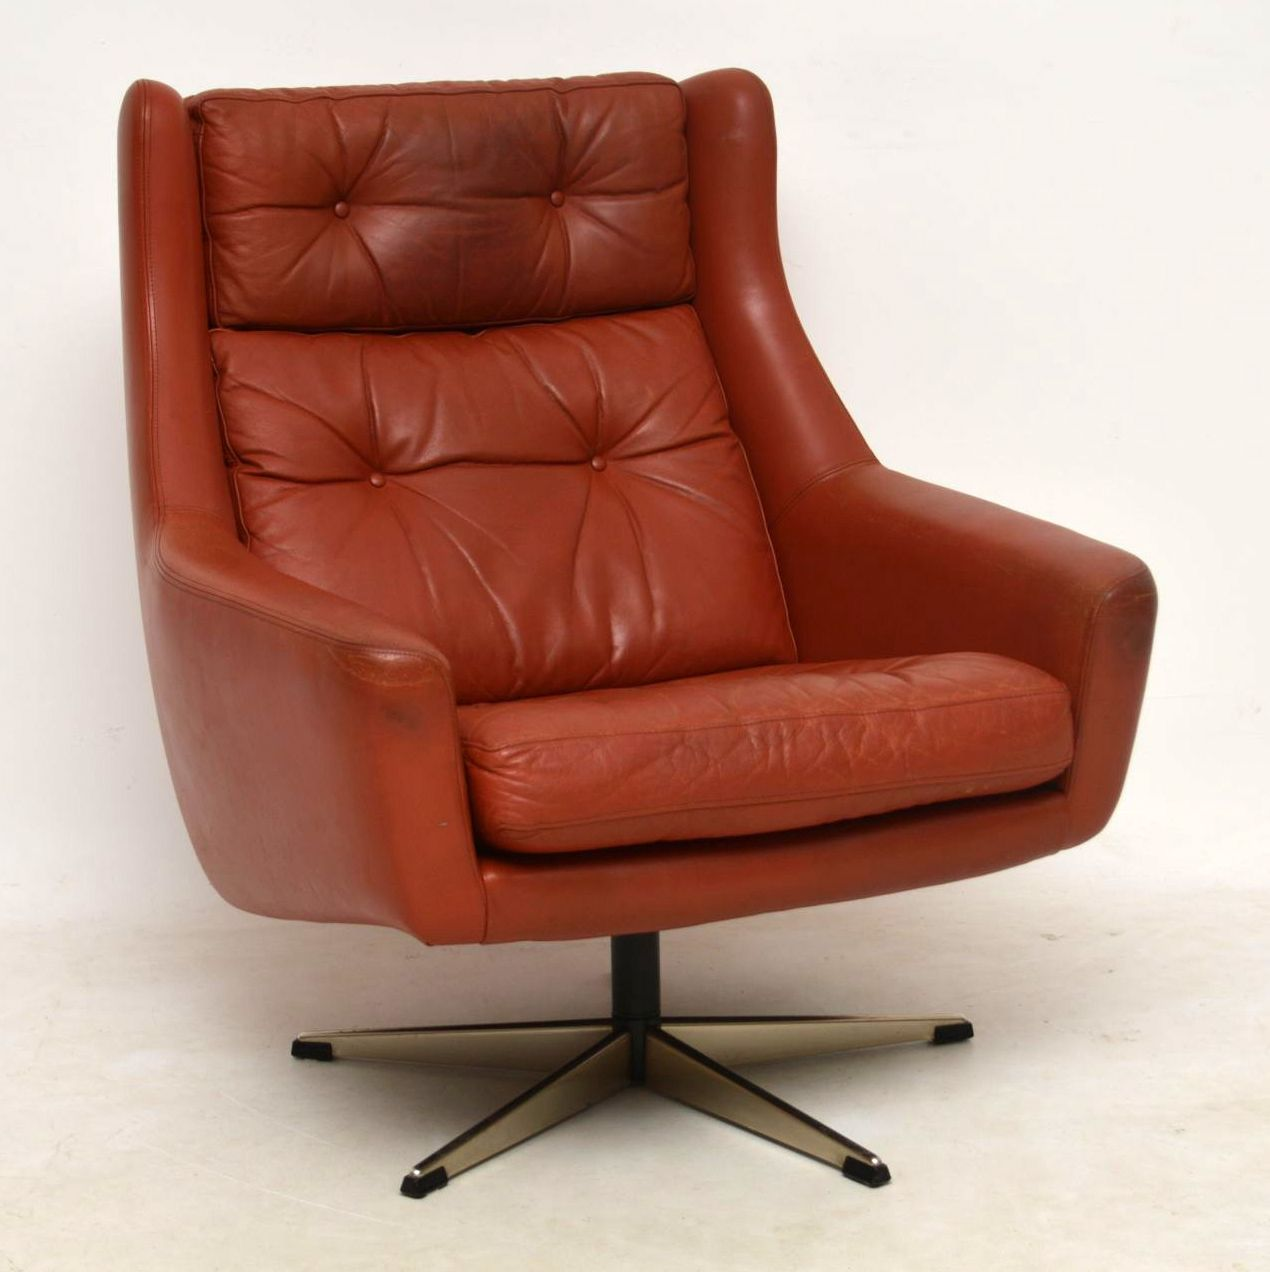 1960's Danish Vintage Leather Swivel Armchair ...